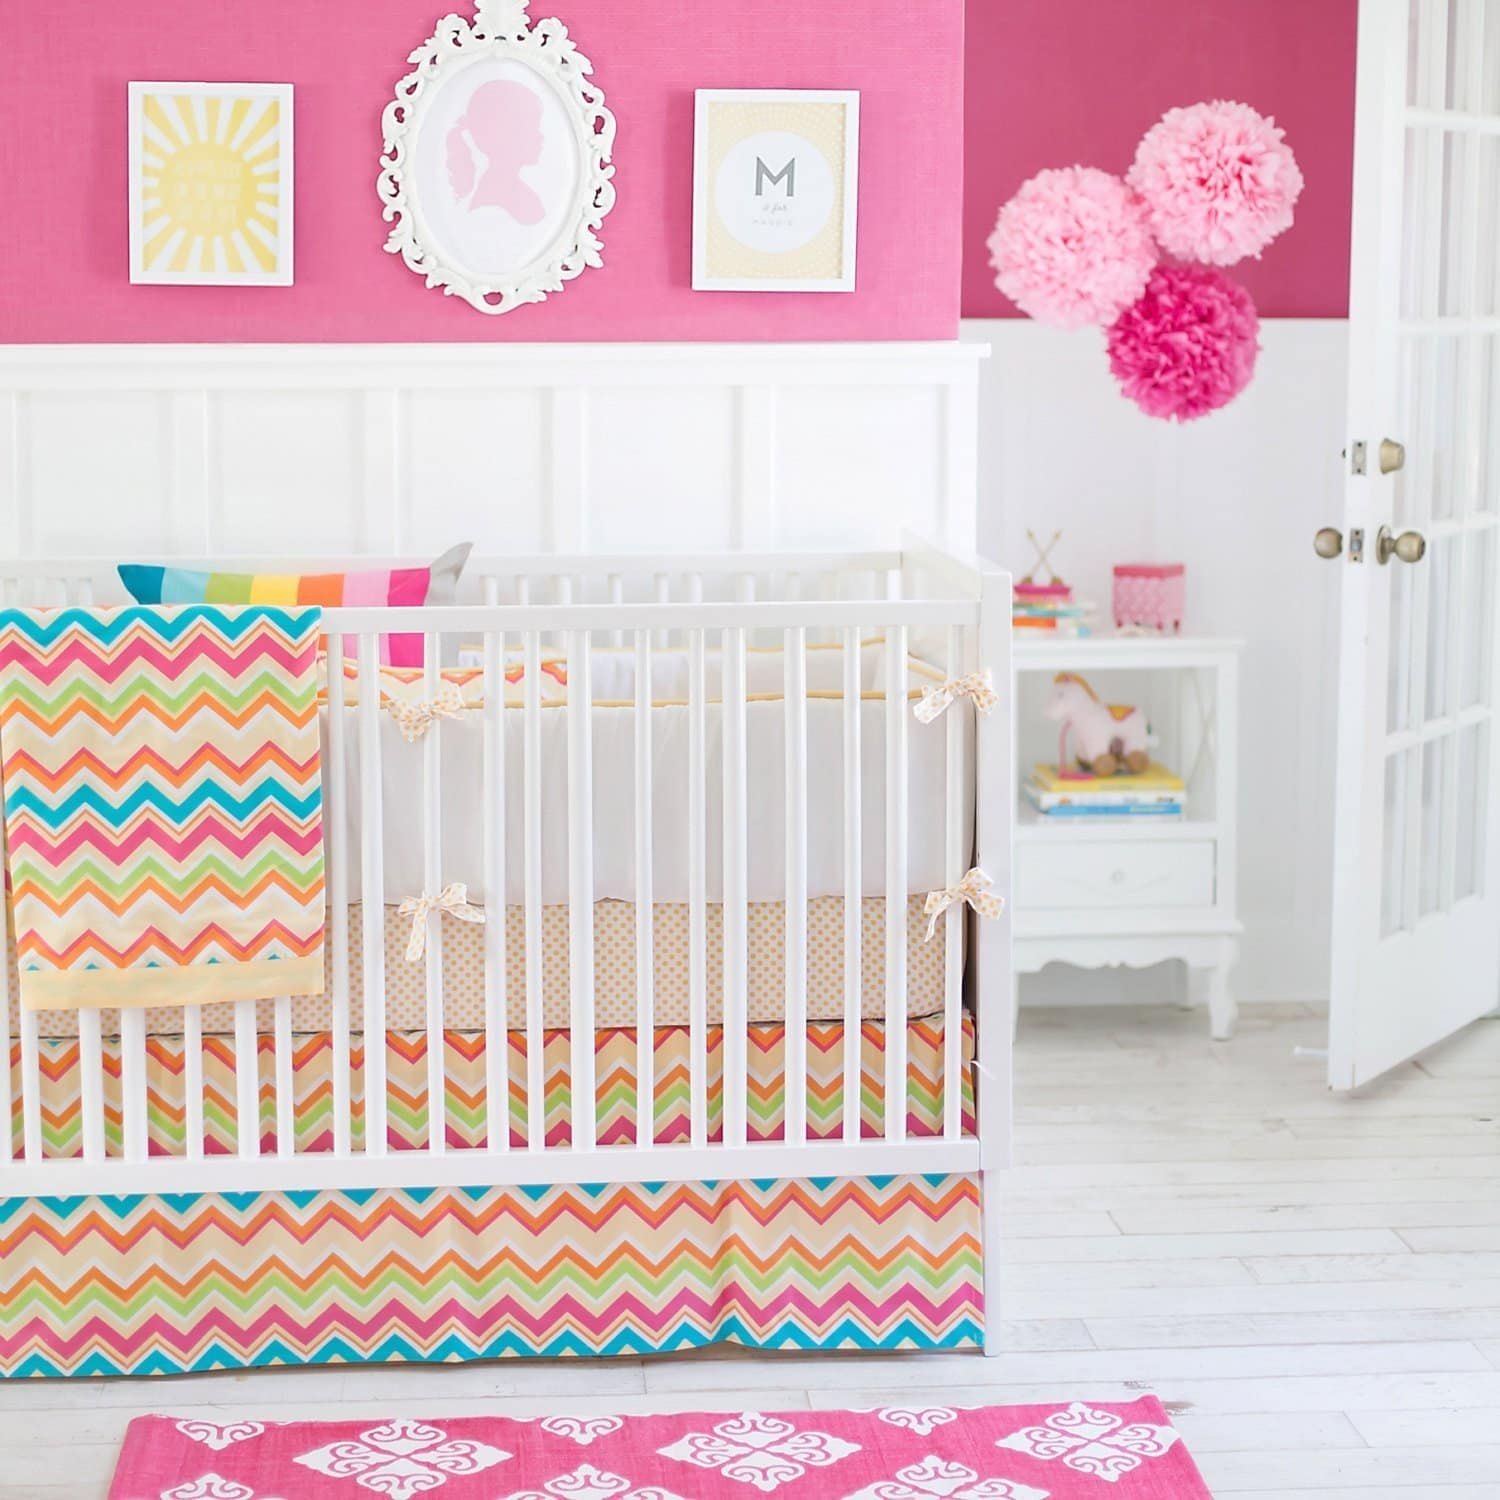 Yellow & Pink Chevron Sunnyside Up Baby Bedding Set-Crib Bedding Set-New Arrivals-Jack and Jill Boutique